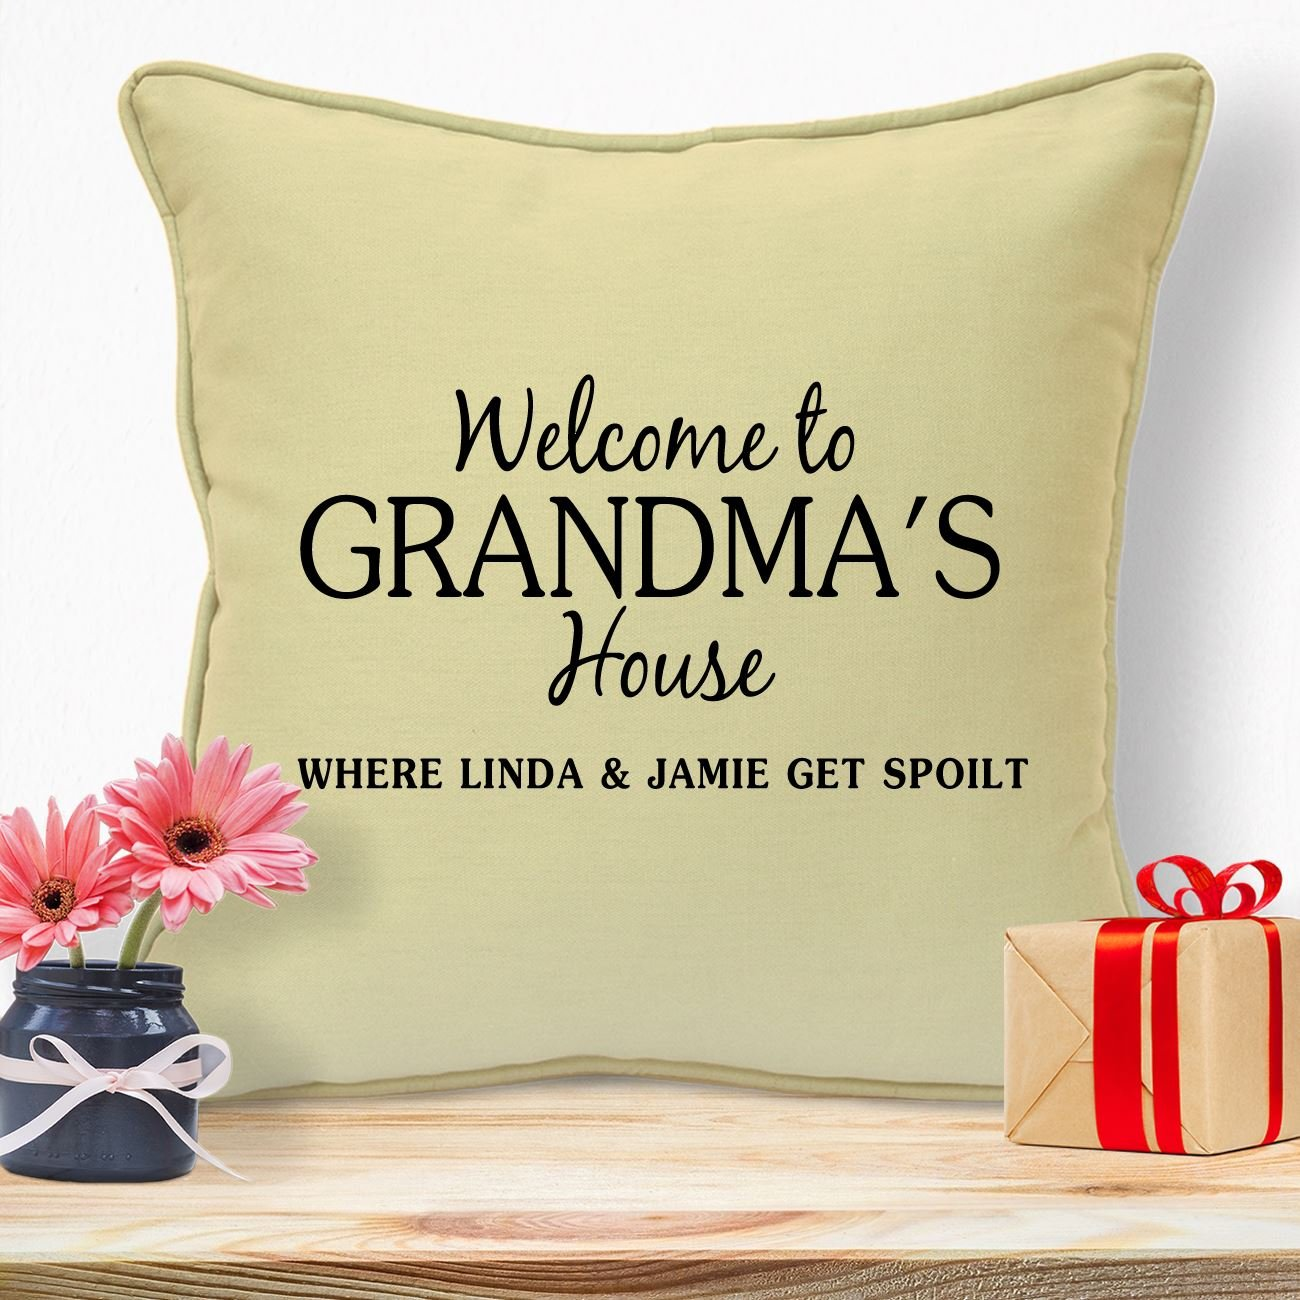 Personalised Gifts For Grandma Nanny Granny Mothers Day Birthday Christmas Xmas From Grandson Granddaughter Grandchildren Grandkids